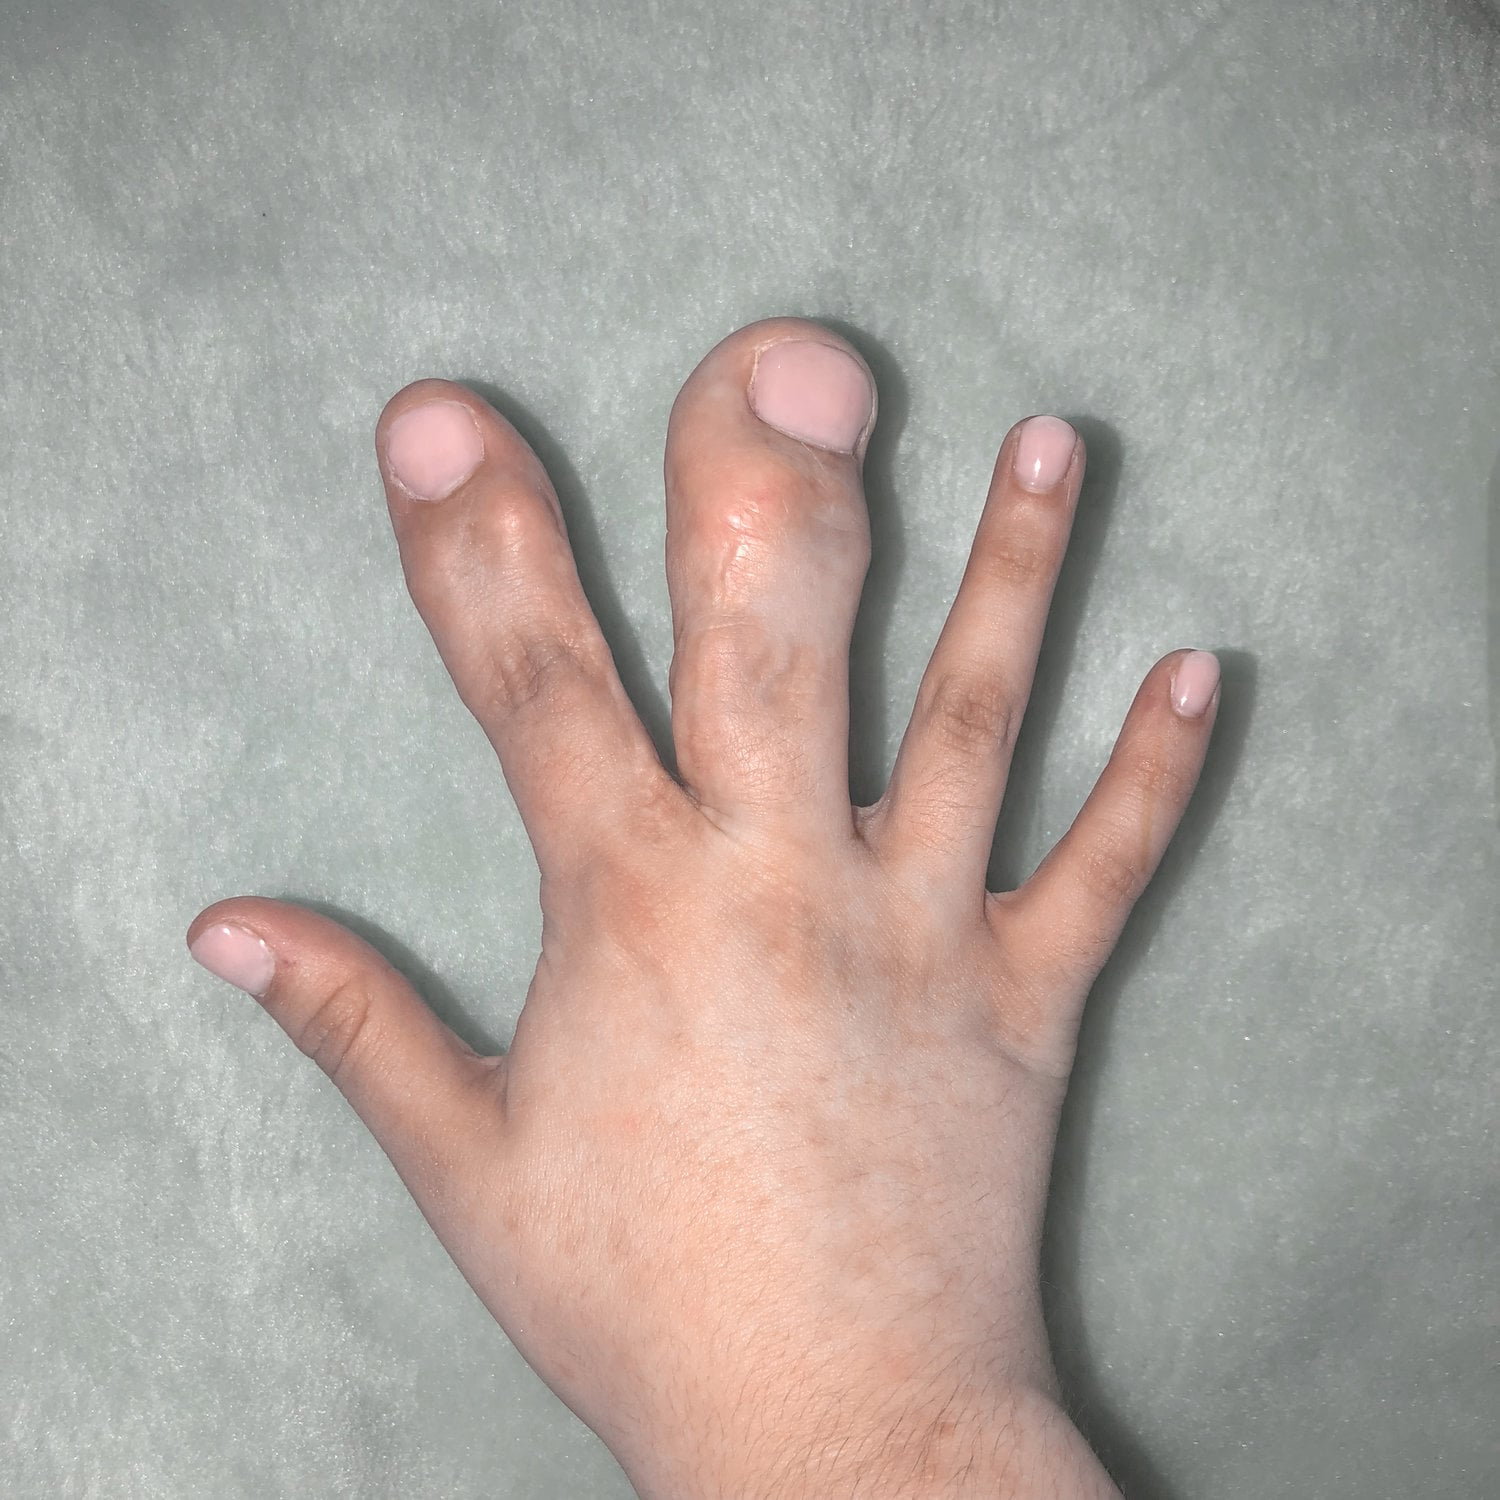 These are my Fingers